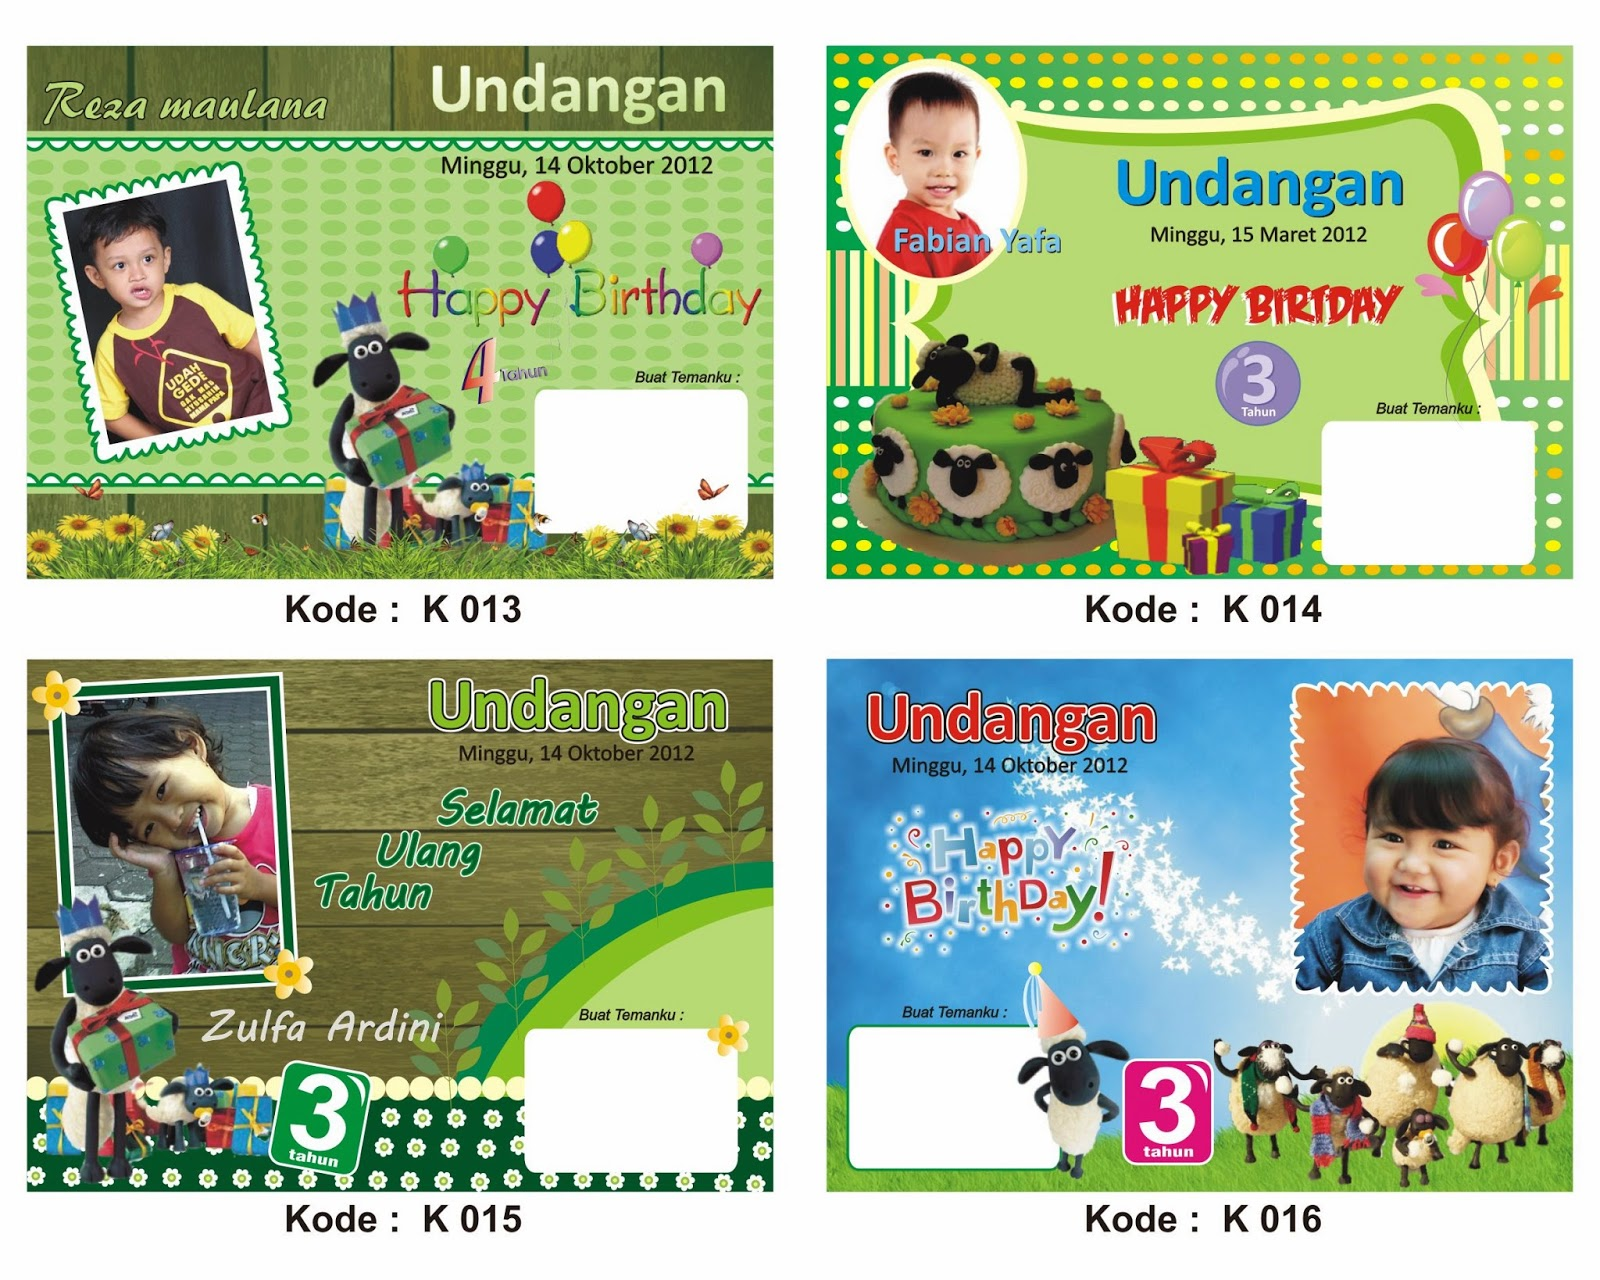 Jual Template Background Undangan Ultah 0813 3519 7828